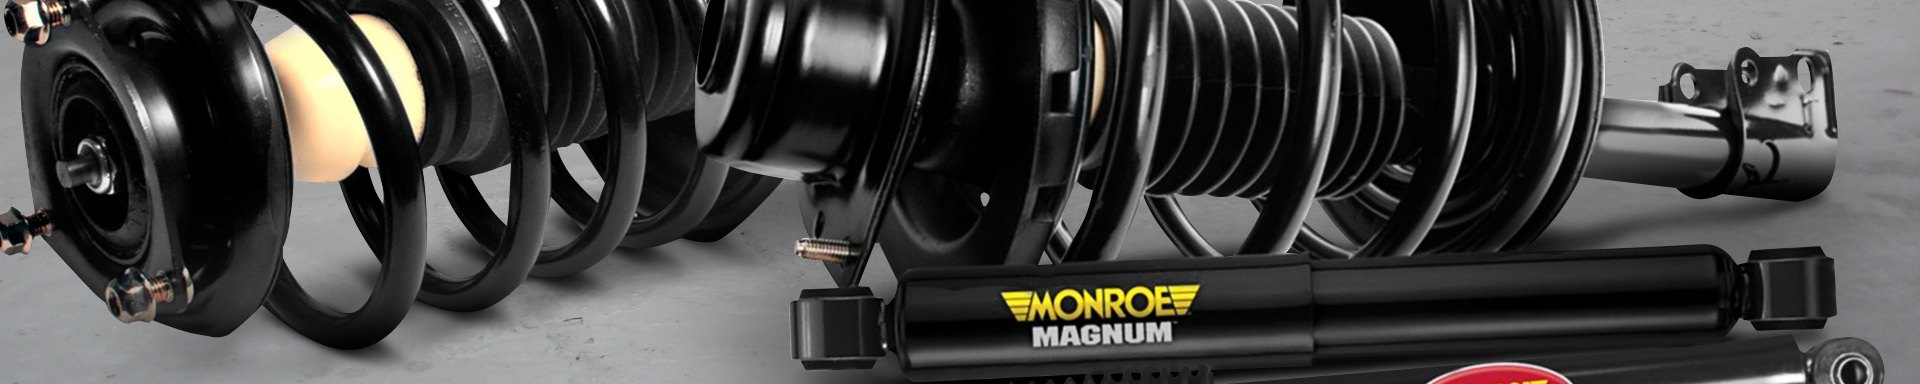 Monroe 901873 Max-Lift Gas-Charged Lift Support